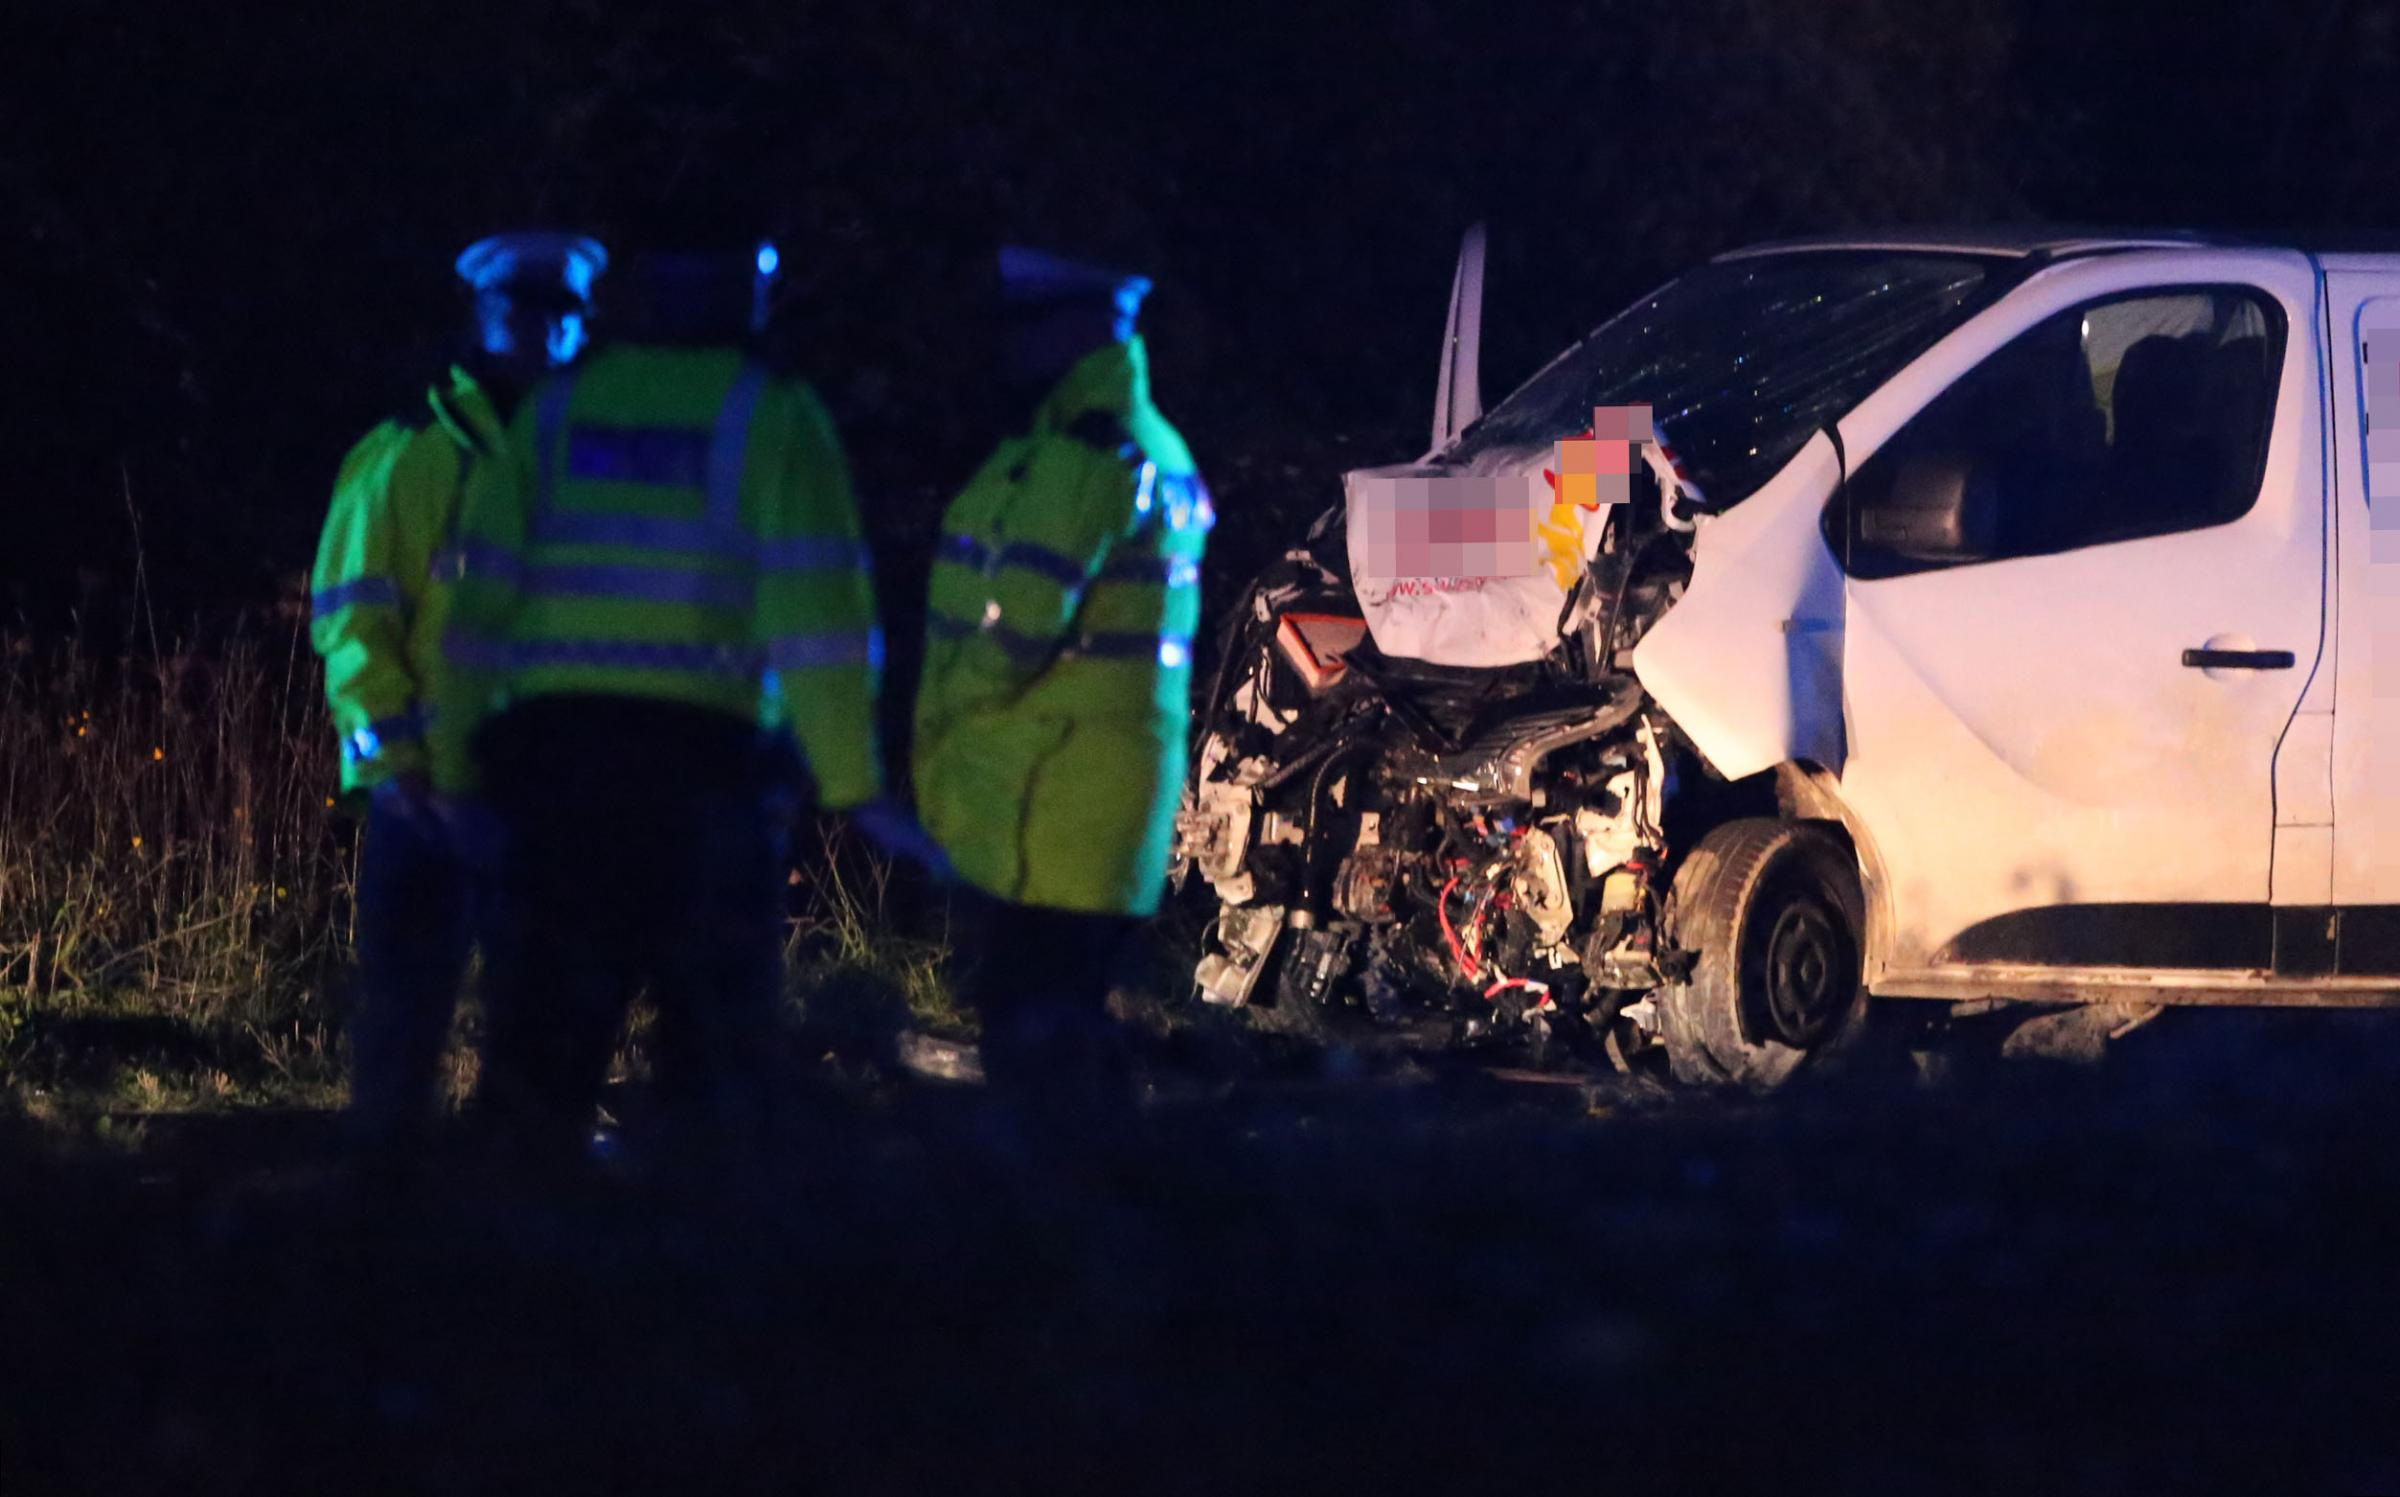 A27 crash: road closed and air ambulance called after serious accident